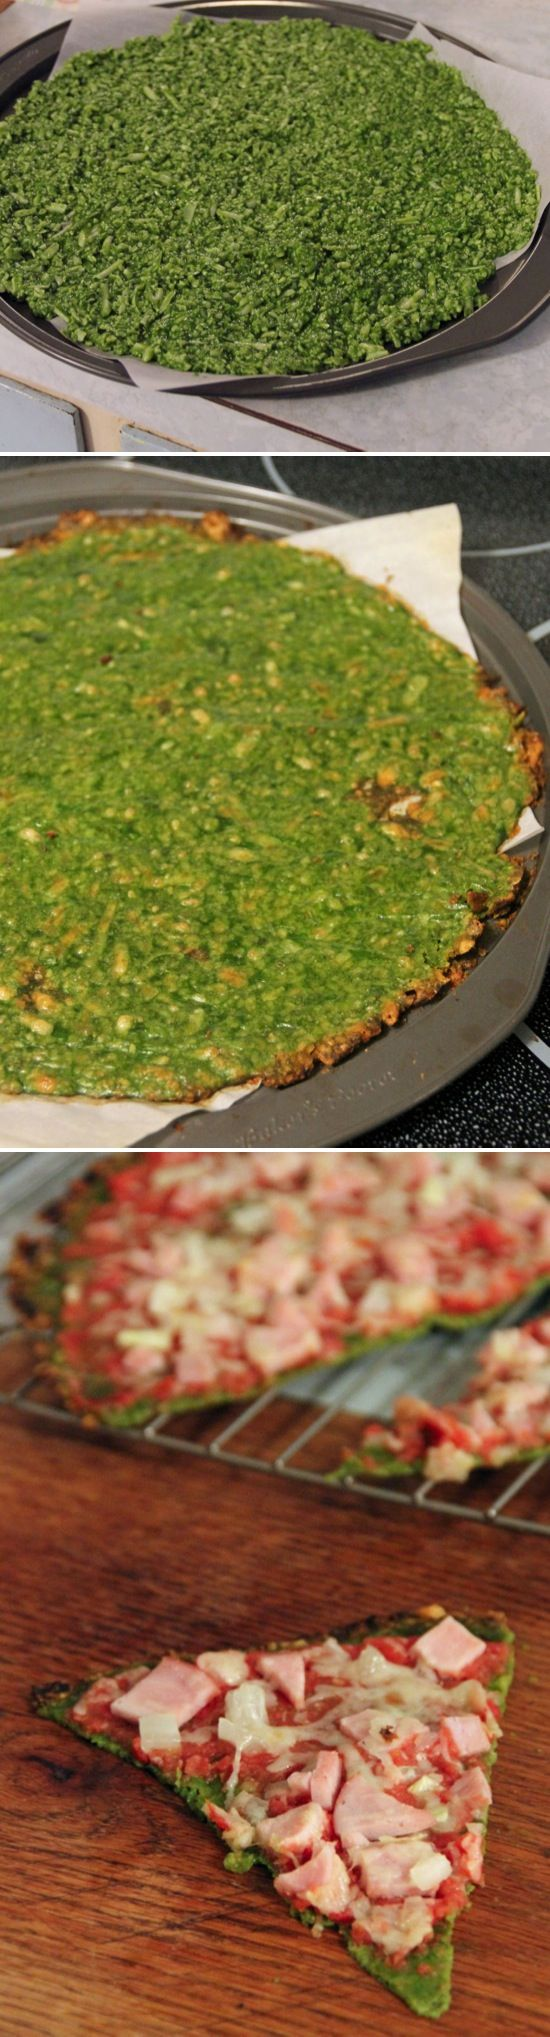 Spinach Pizza Crust. Love the cauliflower pizzas, but this sounds just as delish!